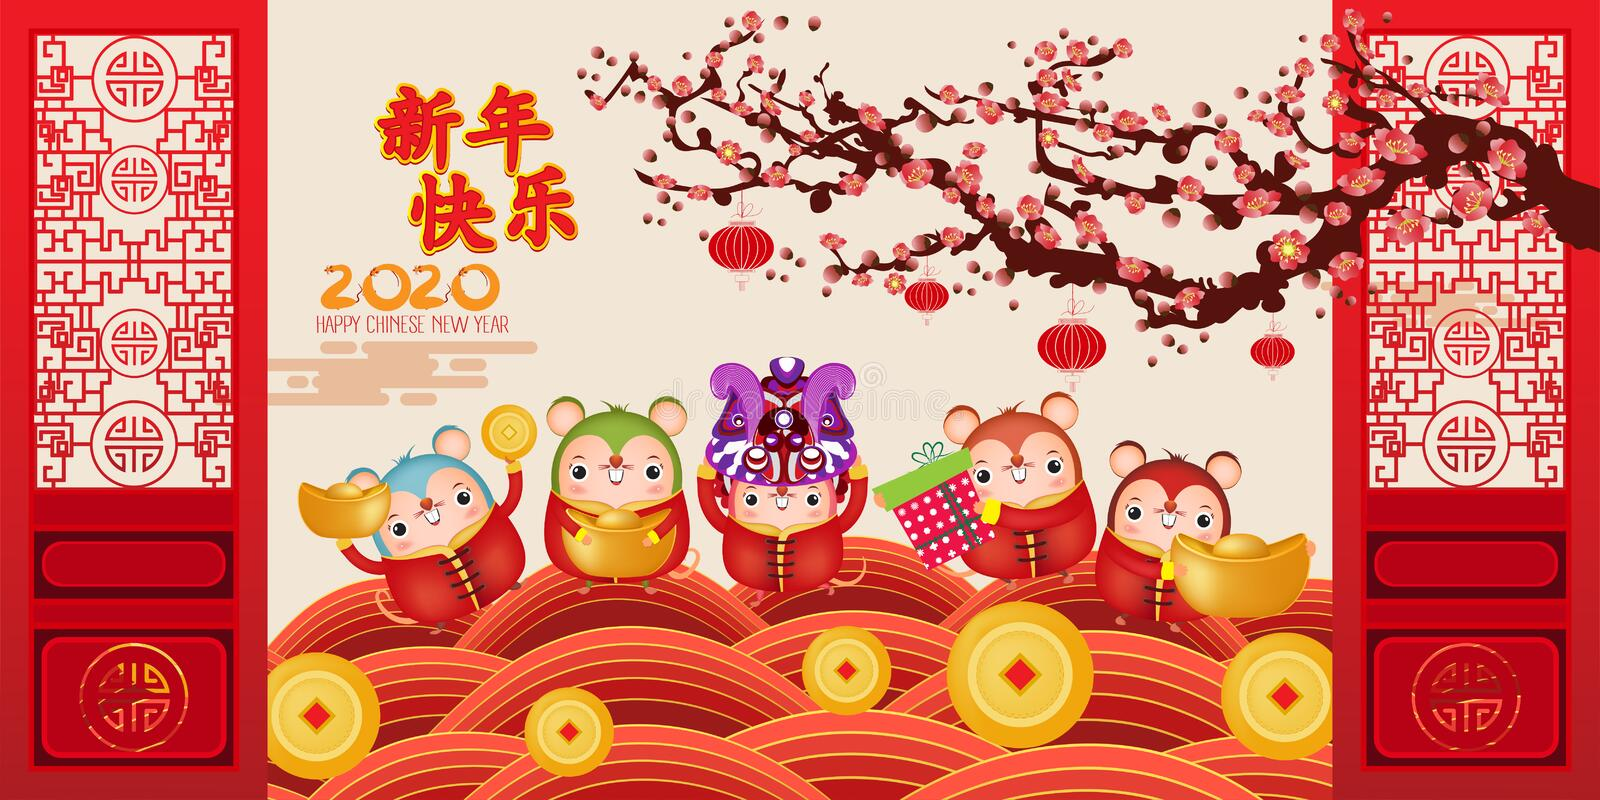 2020 Chinese new year - Year of the Rat. Cute rat happy smile. Blossom flower background. Translation Happy New Year stock illustration